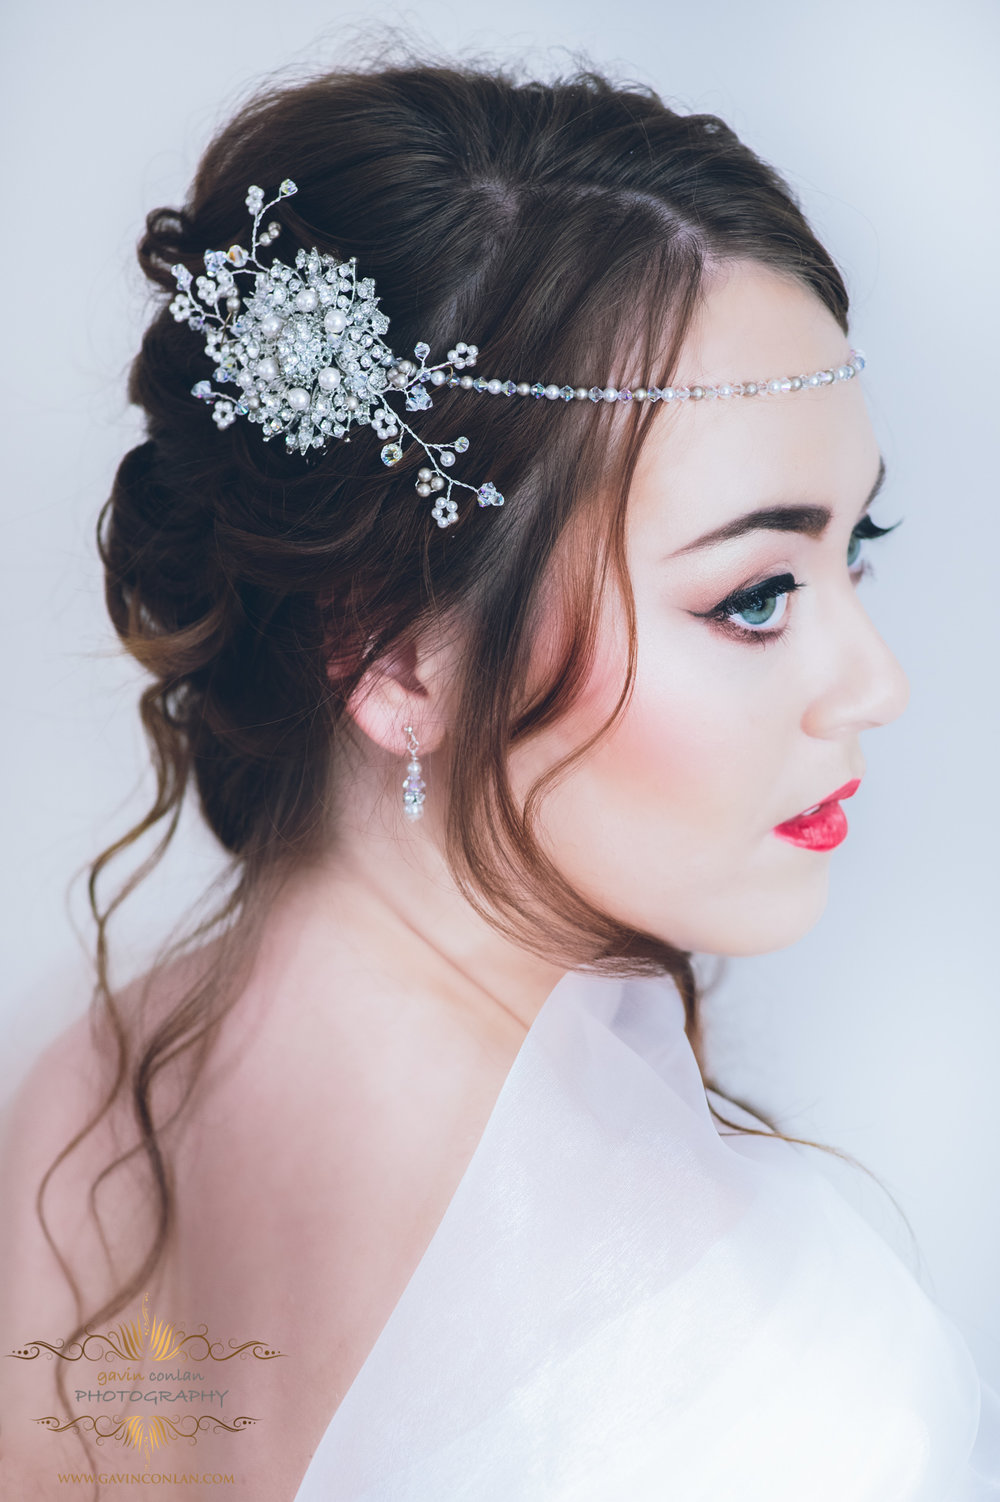 creative-bridal-hair-make-up-jewellery-photo-shoot-gavinconlanphotography-07